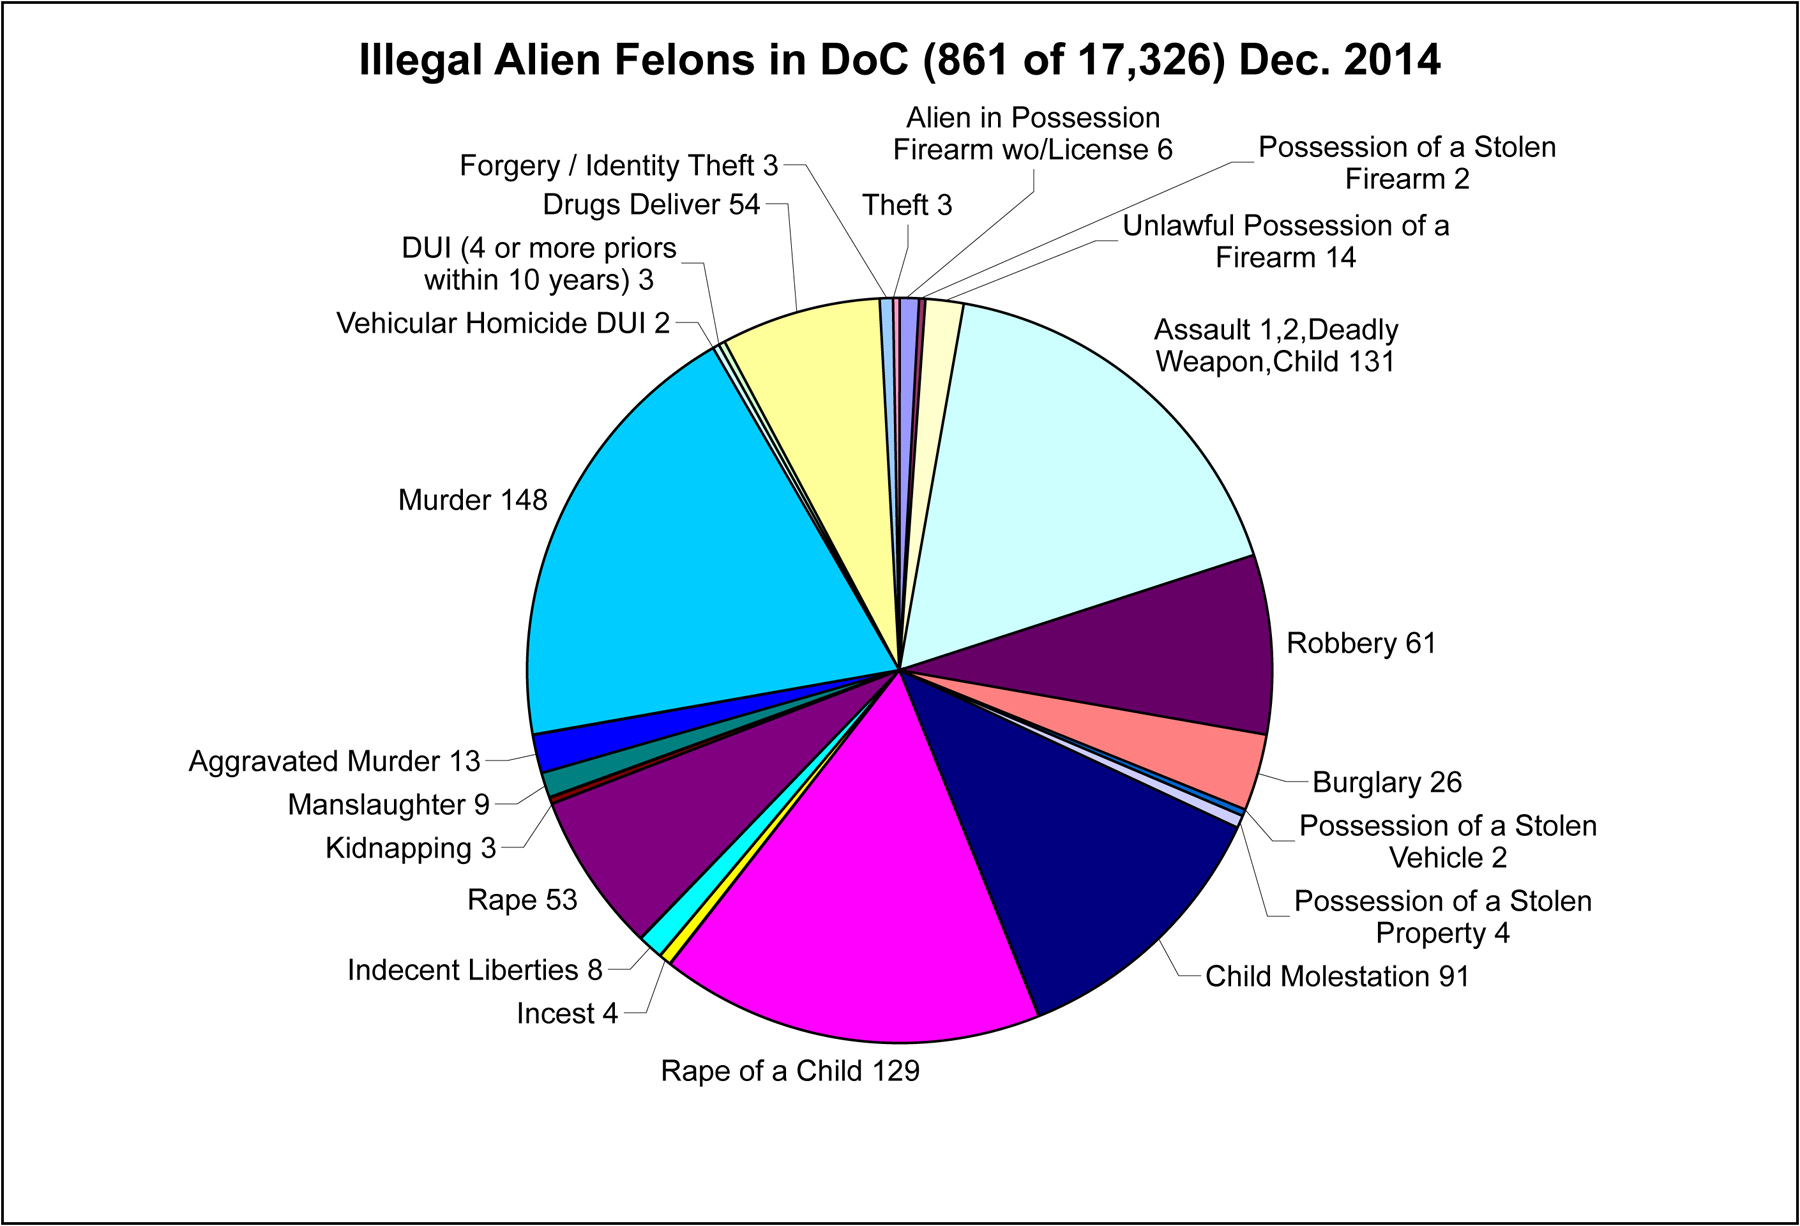 Washington State Dept. of Corrections Illegal Alien Population - 2014